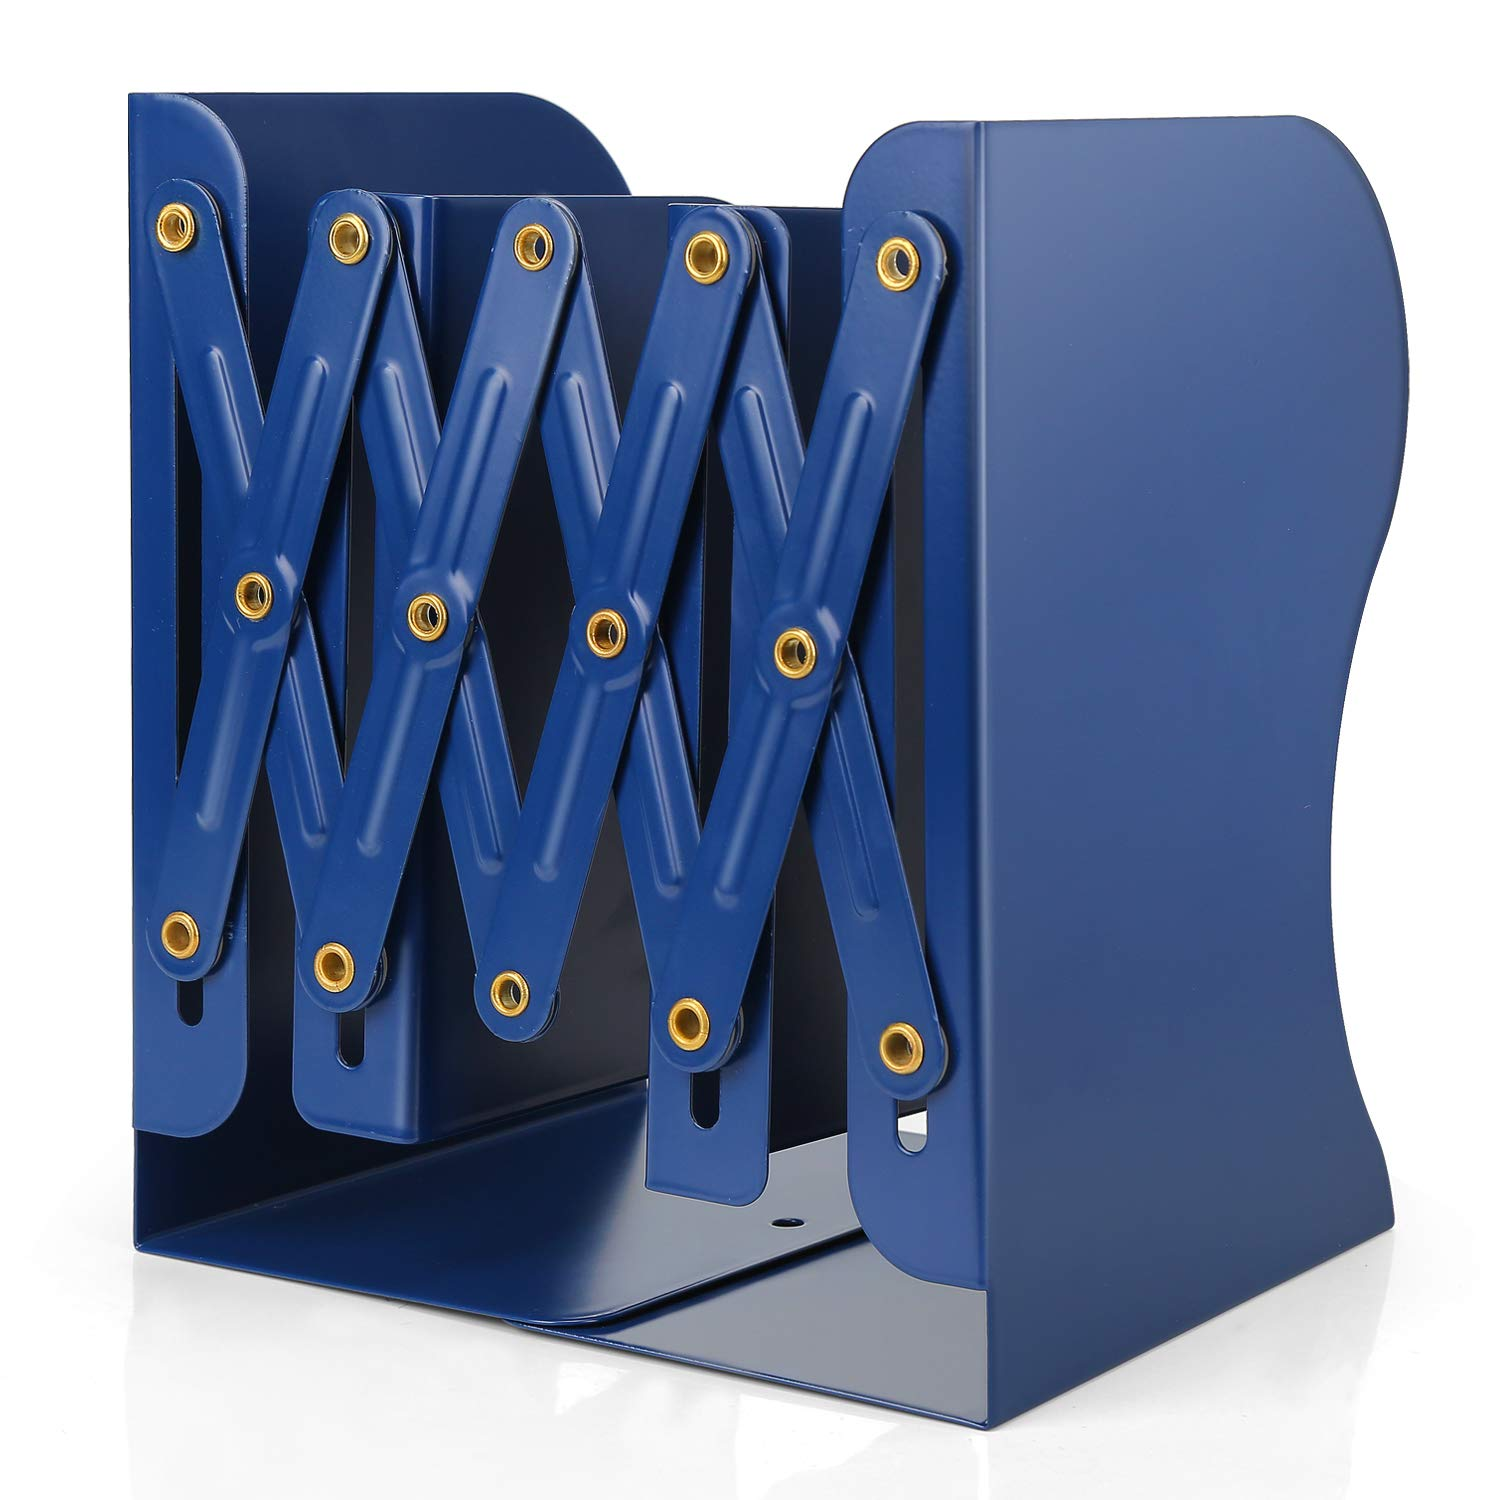 Adjustable Bookends, Metal Book Ends for Heavy Book, 2 Dividers, Nonslip Book Stander for Desk, Shelf, Office, Stationery Gift, Extends up to 19 inches (Blue)